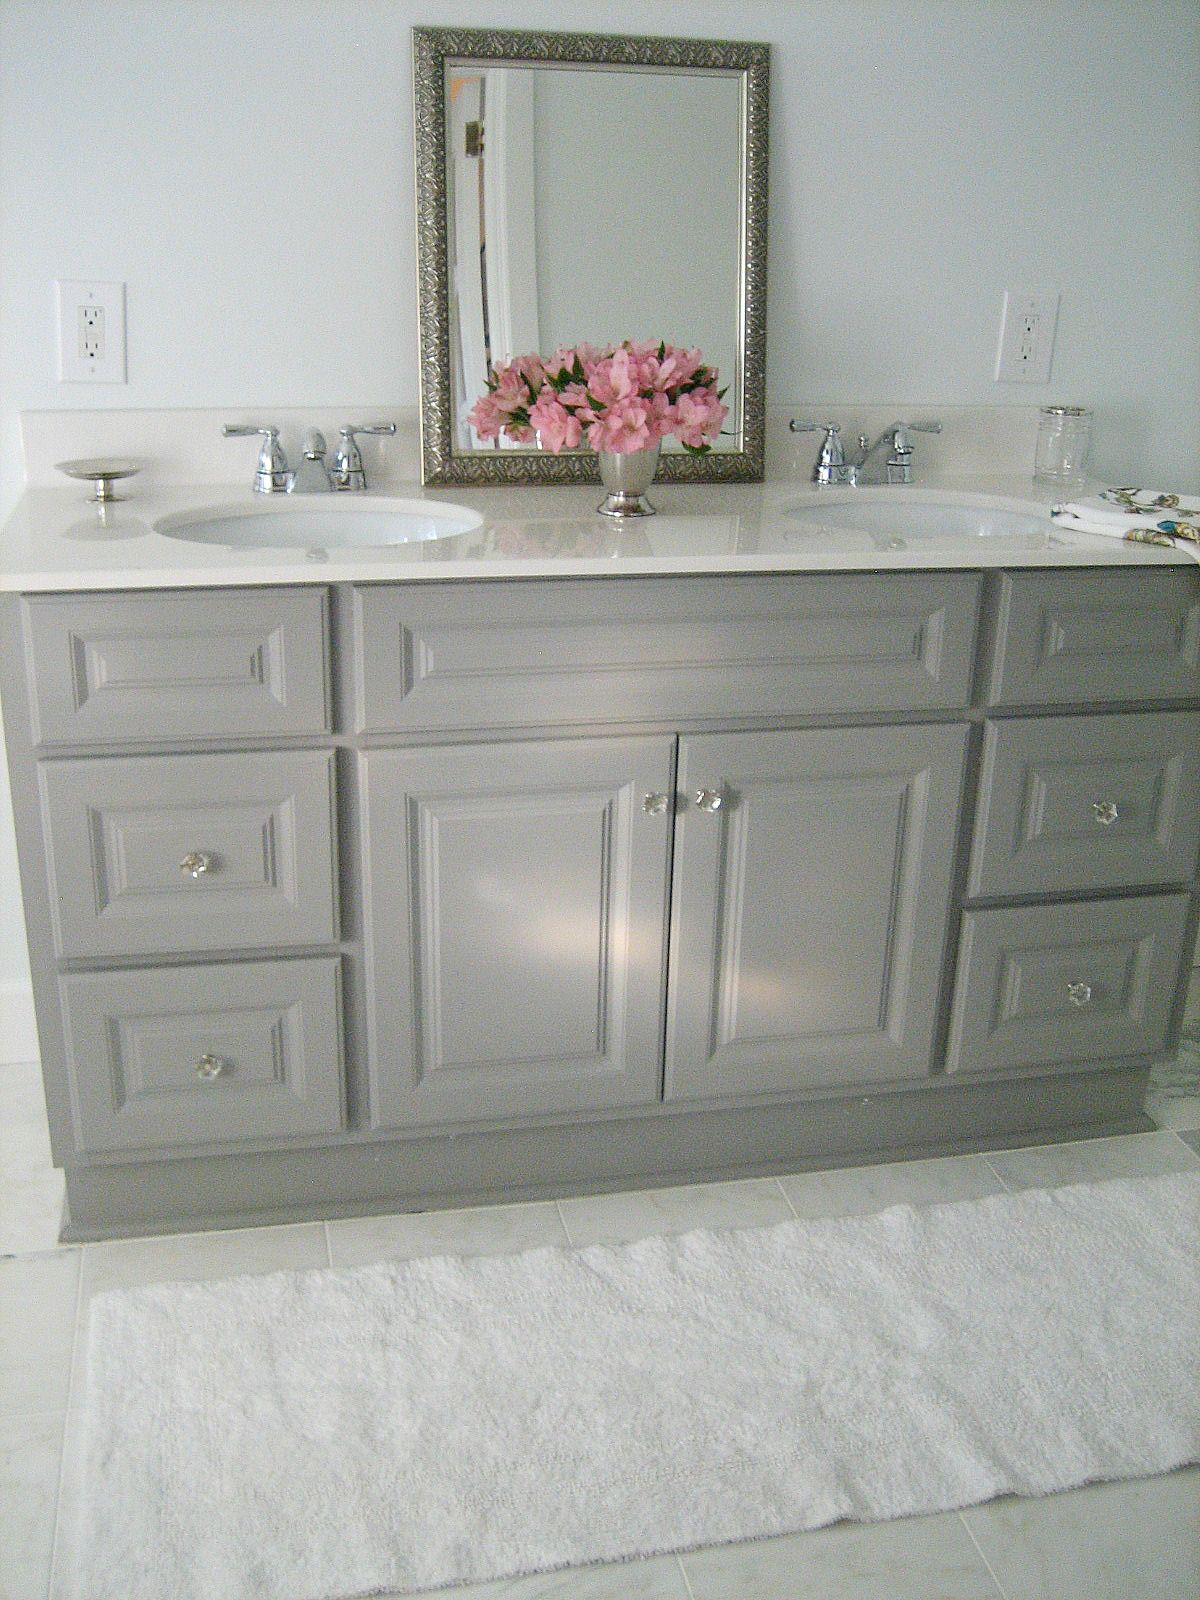 Custom Bathroom Vanities Michigan charcoal gray bathroom vanity - i really like this color! maybe